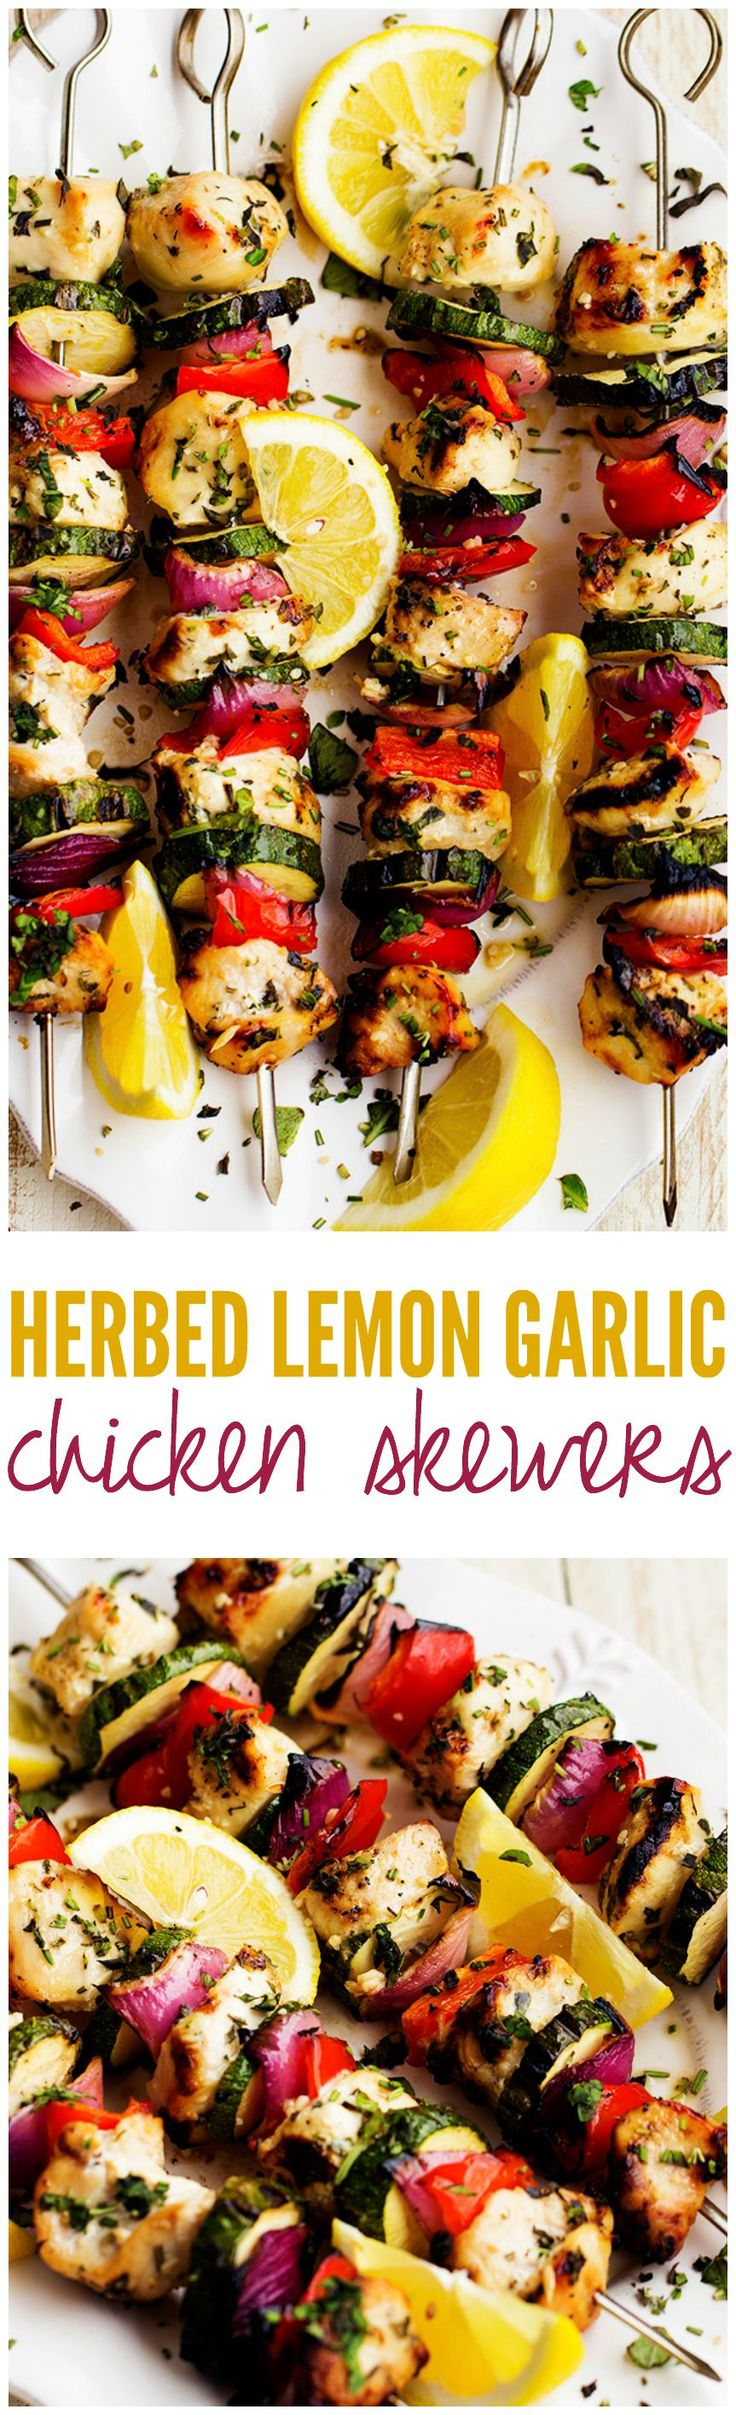 Herbed Lemon Garlic Chicken Skewers - Fast and flavorful marinade. Complemented with fresh and bright summer veggies in this amazing meal that is under 400 calories!